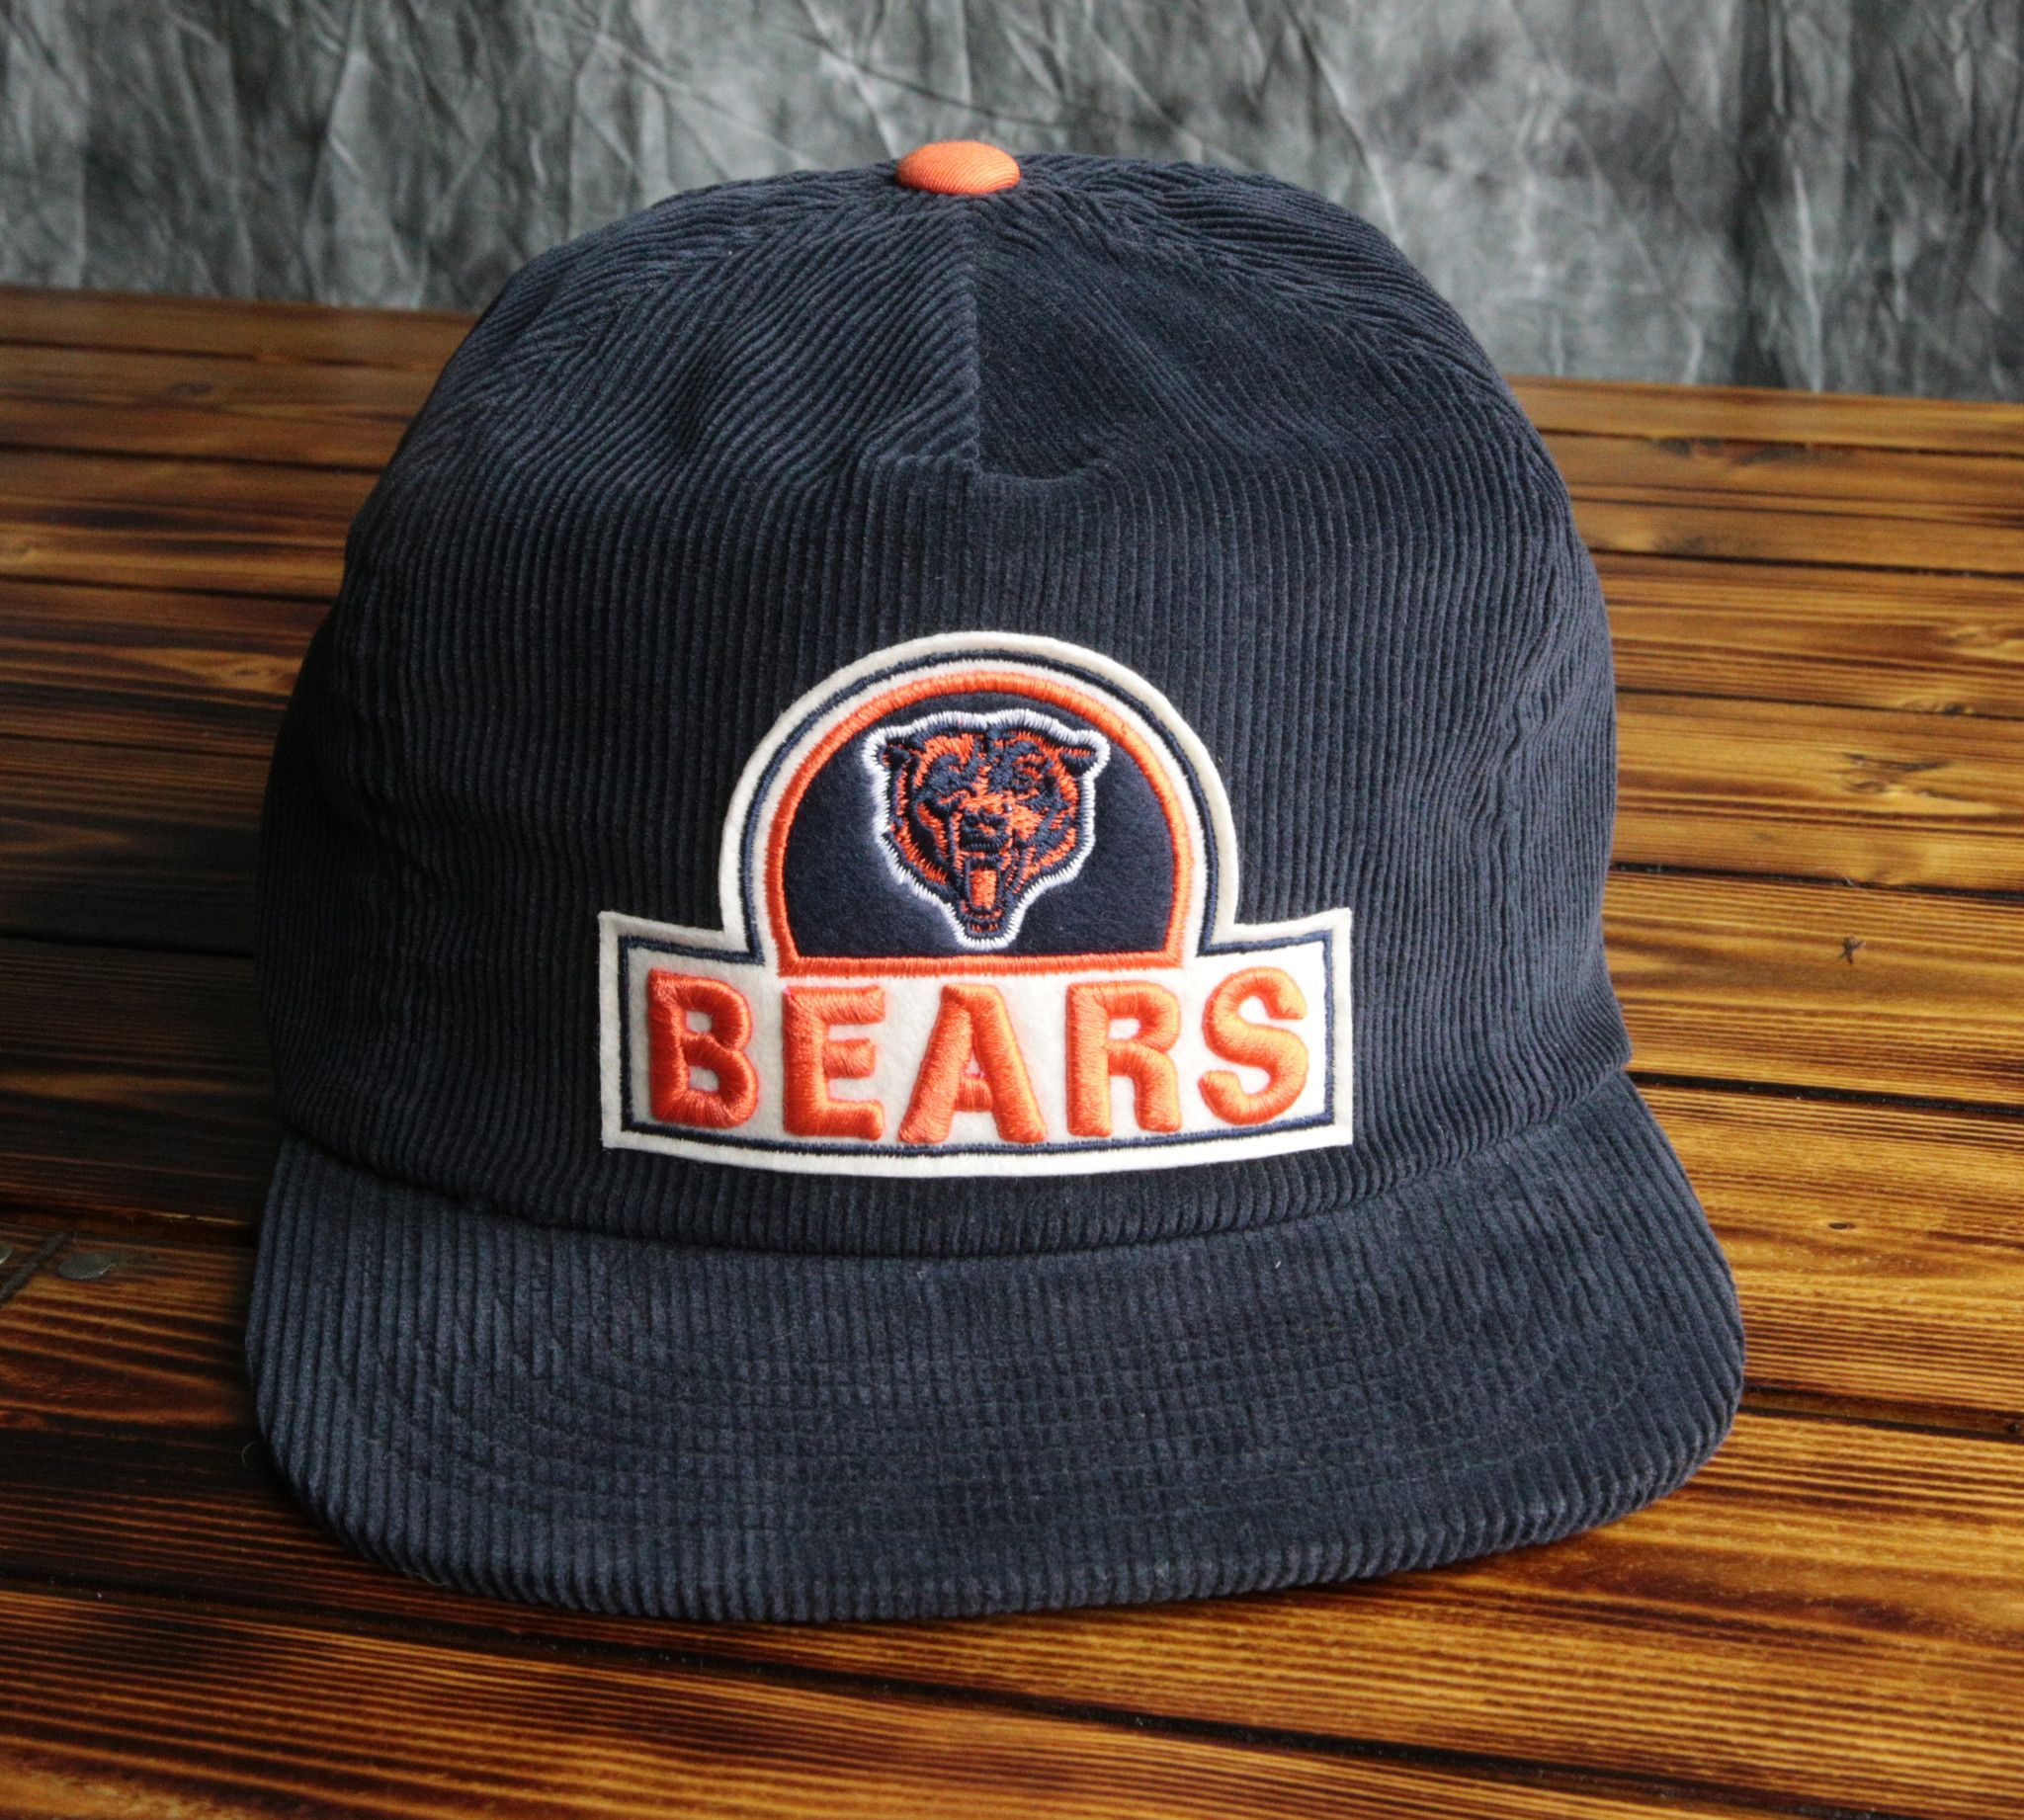 f0c119f2bd844 reduced new era 59fifty san diego chargers dn wh rd fitted hat navy white  red cap 269a4 6dd4a  usa chicago bears mitchell ness felt patch corduroy hat  8b962 ...